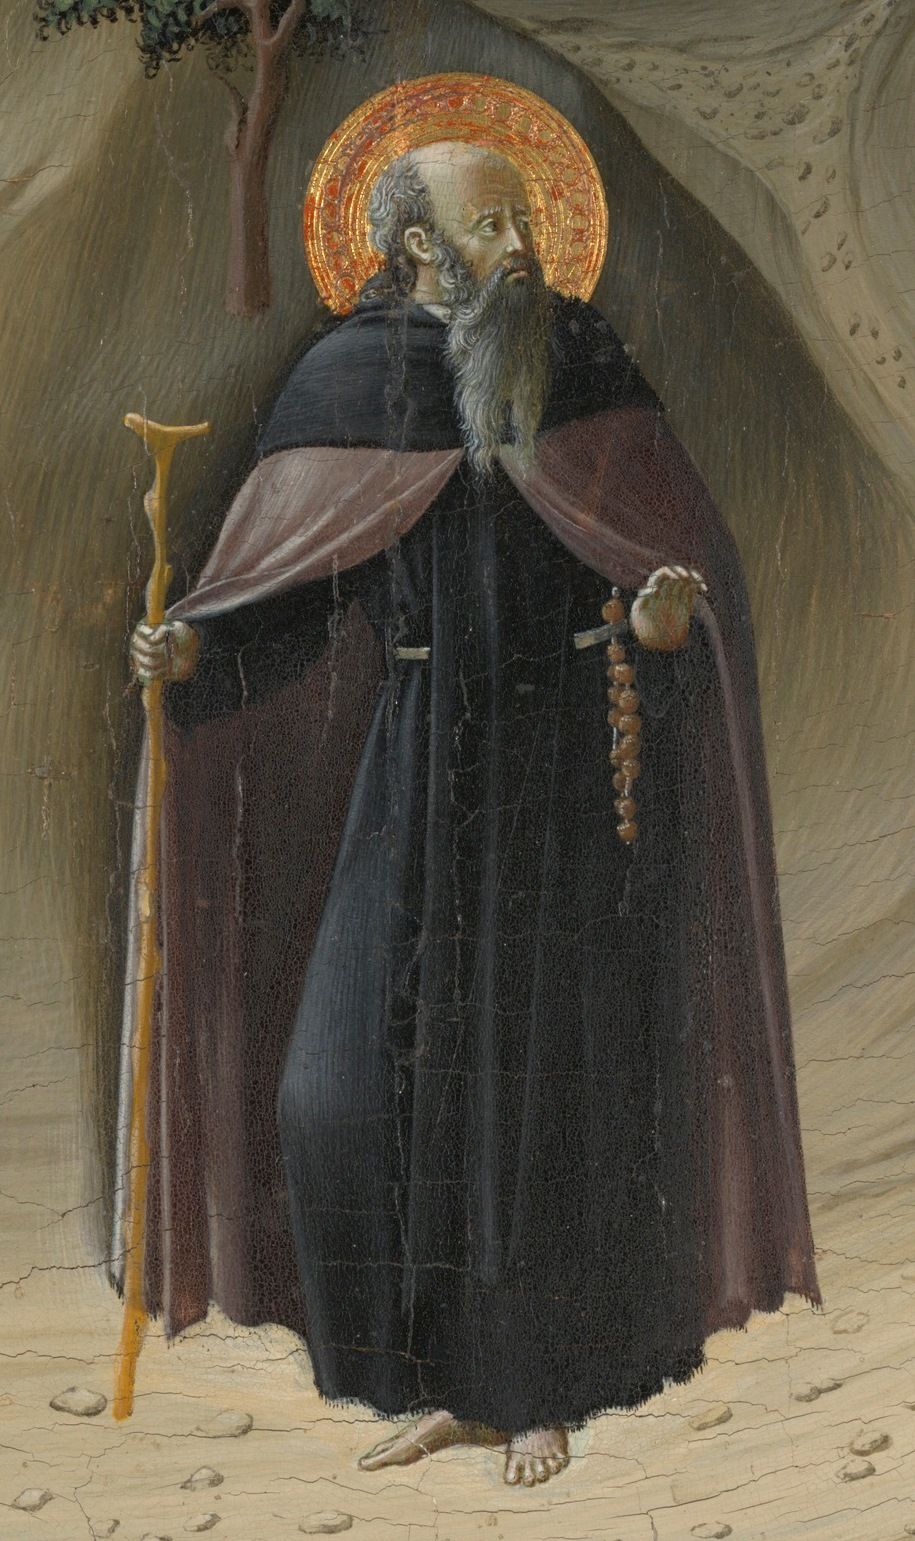 Meister der Osservanza, Die Versuchung des hl. Antonius (Ausschnitt), um 1435, Yale University Art Gallery, New Haven